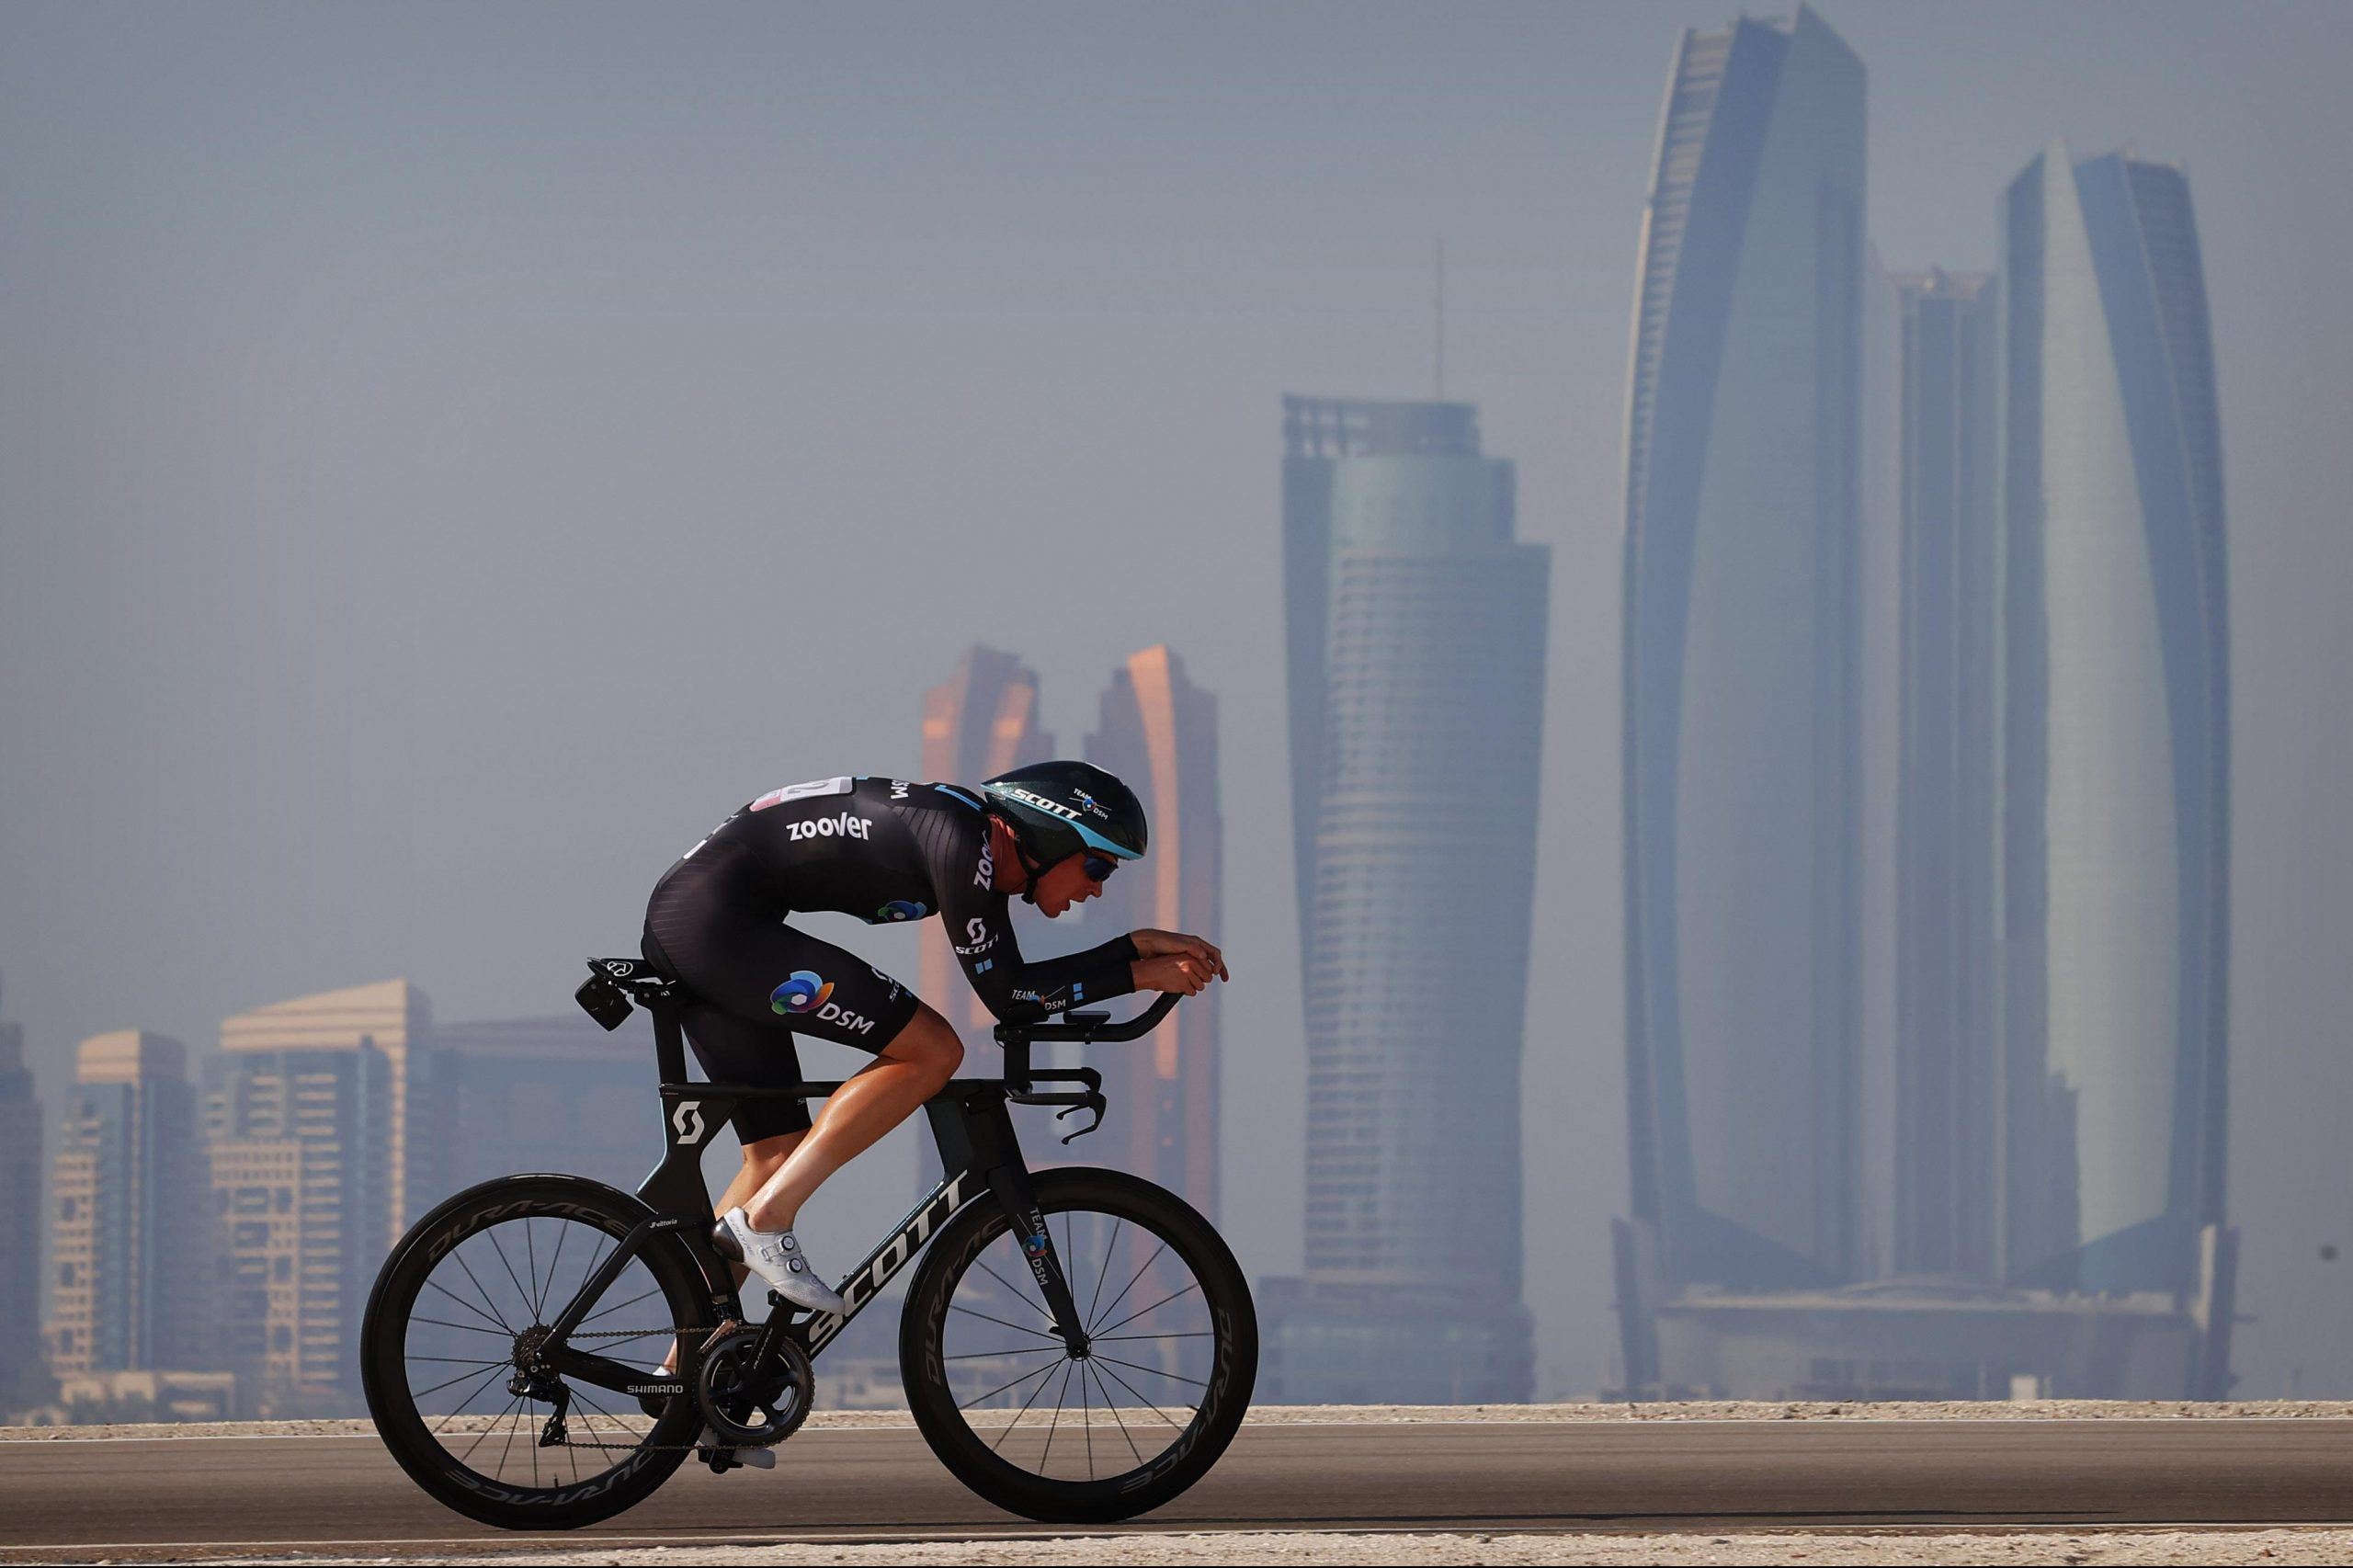 Fiercely fast and flat TT at UAE Tour | Team DSM